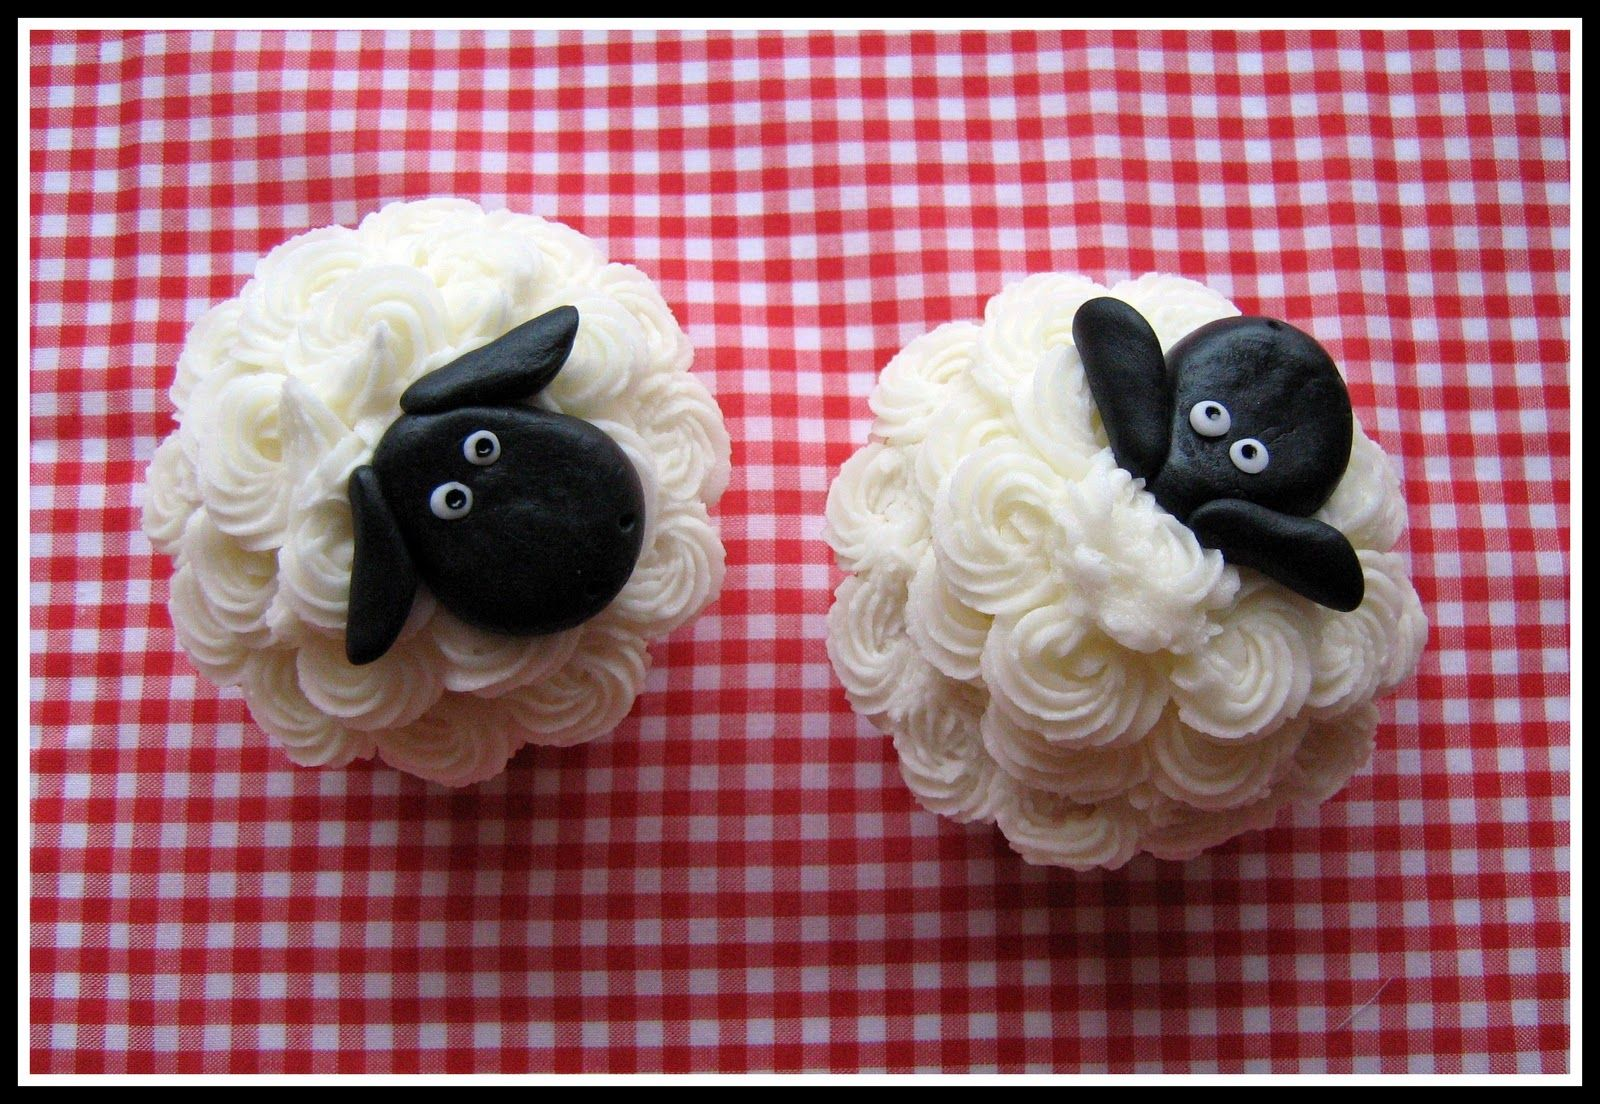 Fowl Single File: Not Baaaad for a Sheep Cake (and Cupcakes!)